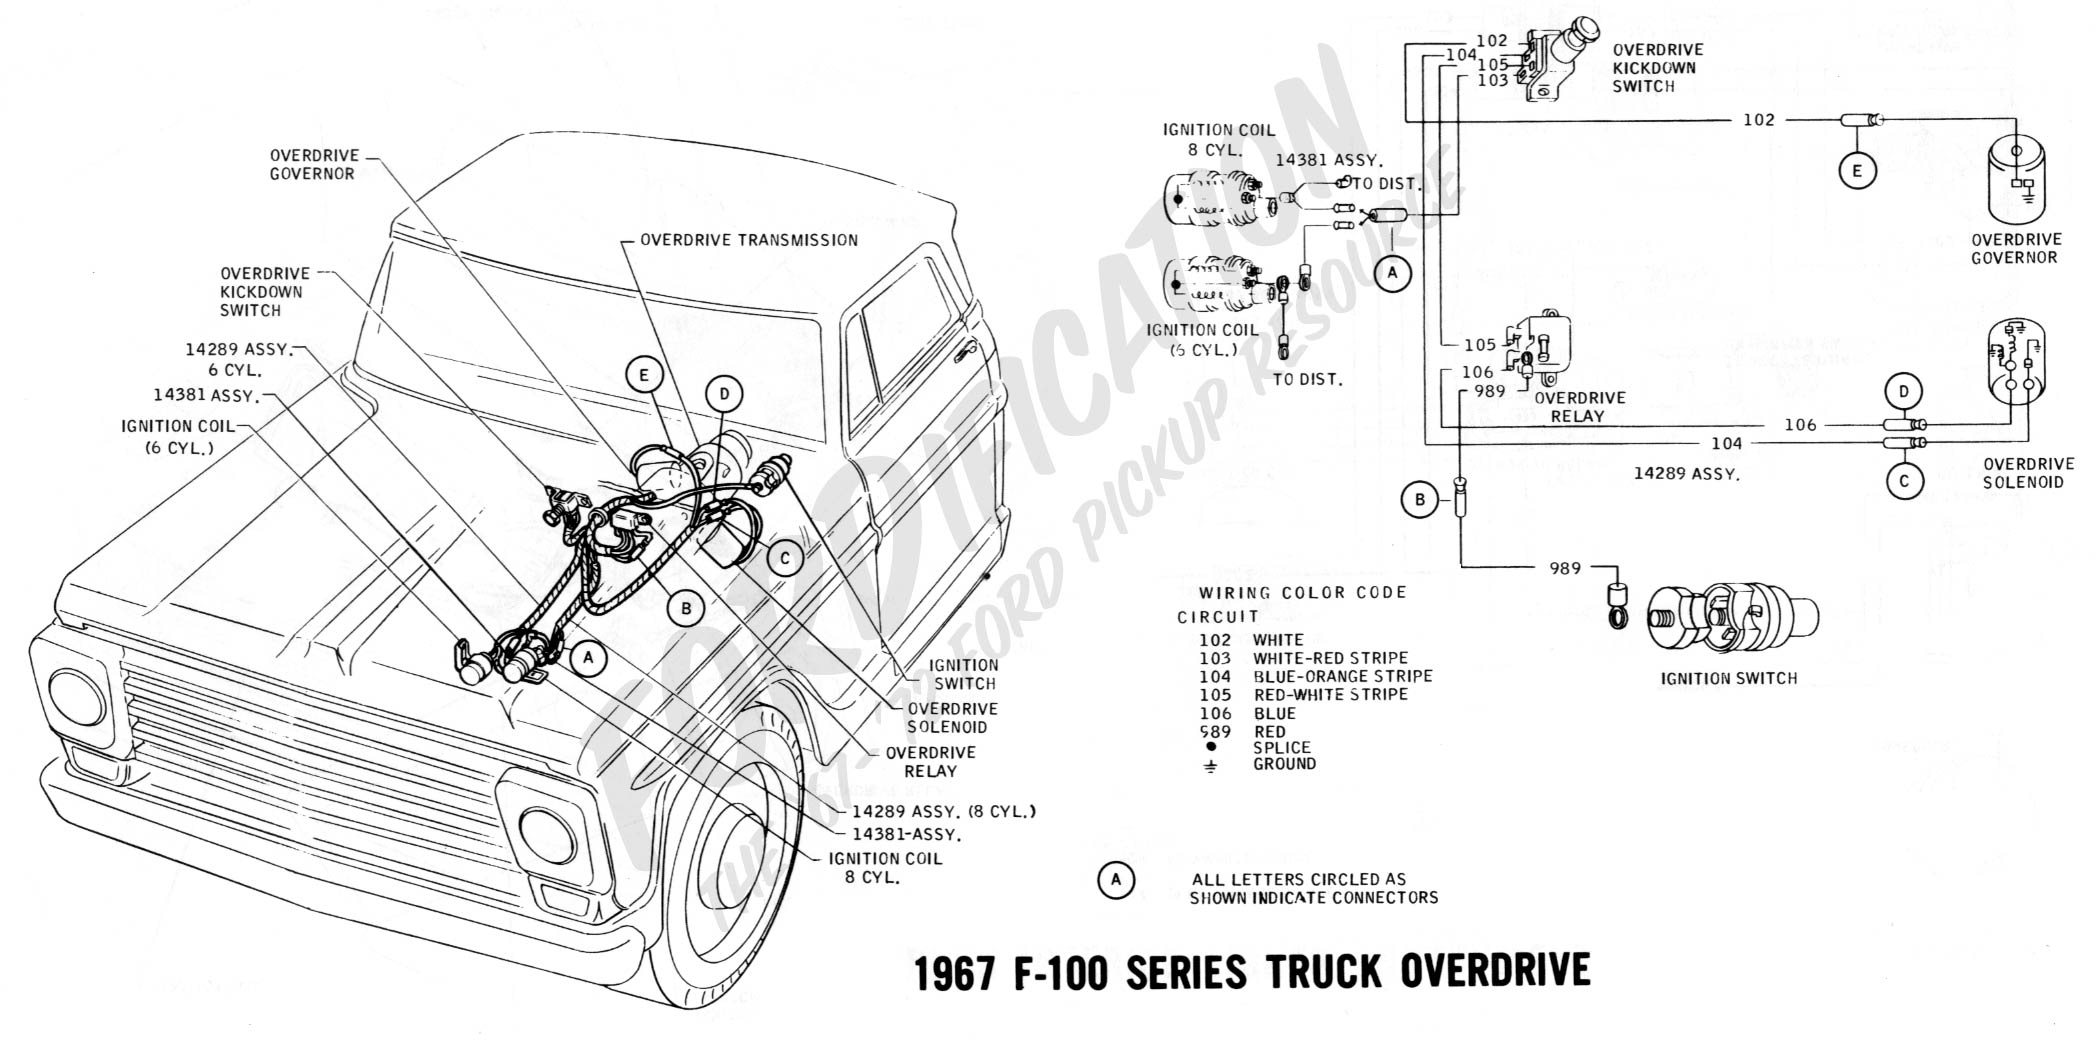 ford truck technical drawings and schematics section h 1968 ford truck shop manual (ebook